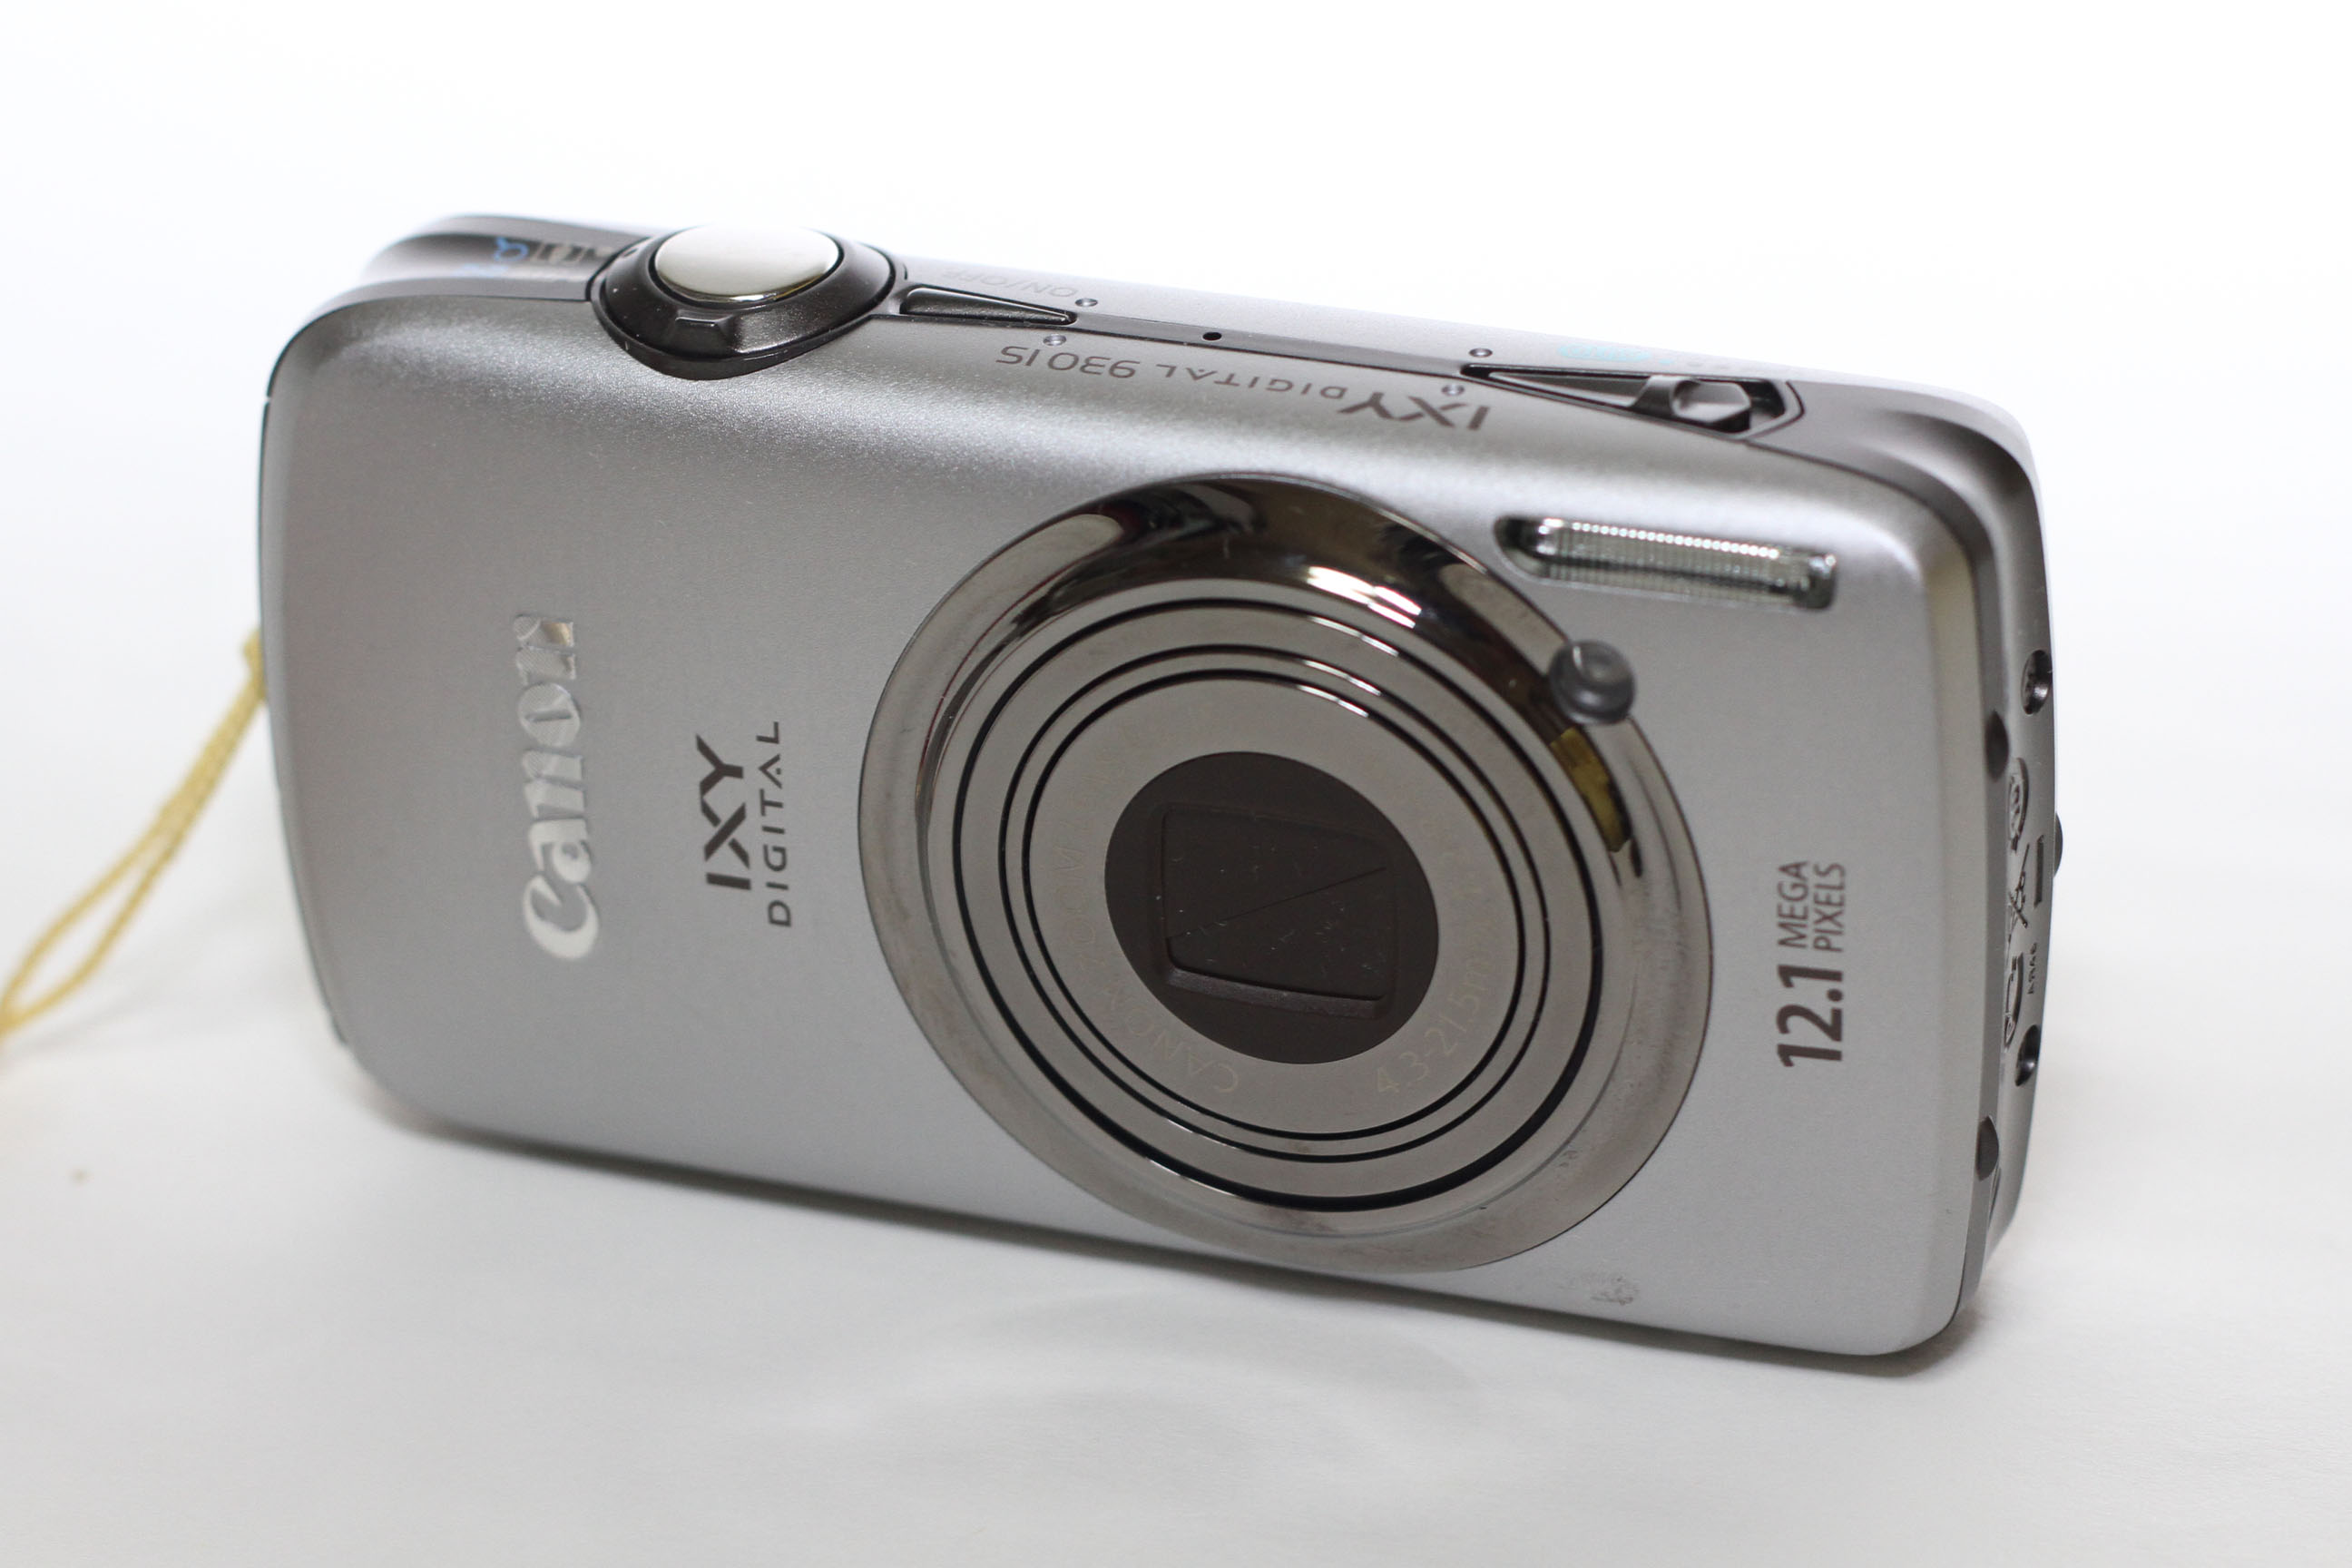 CANON IXY DIGITAL 920 IS DRIVER WINDOWS 7 (2019)